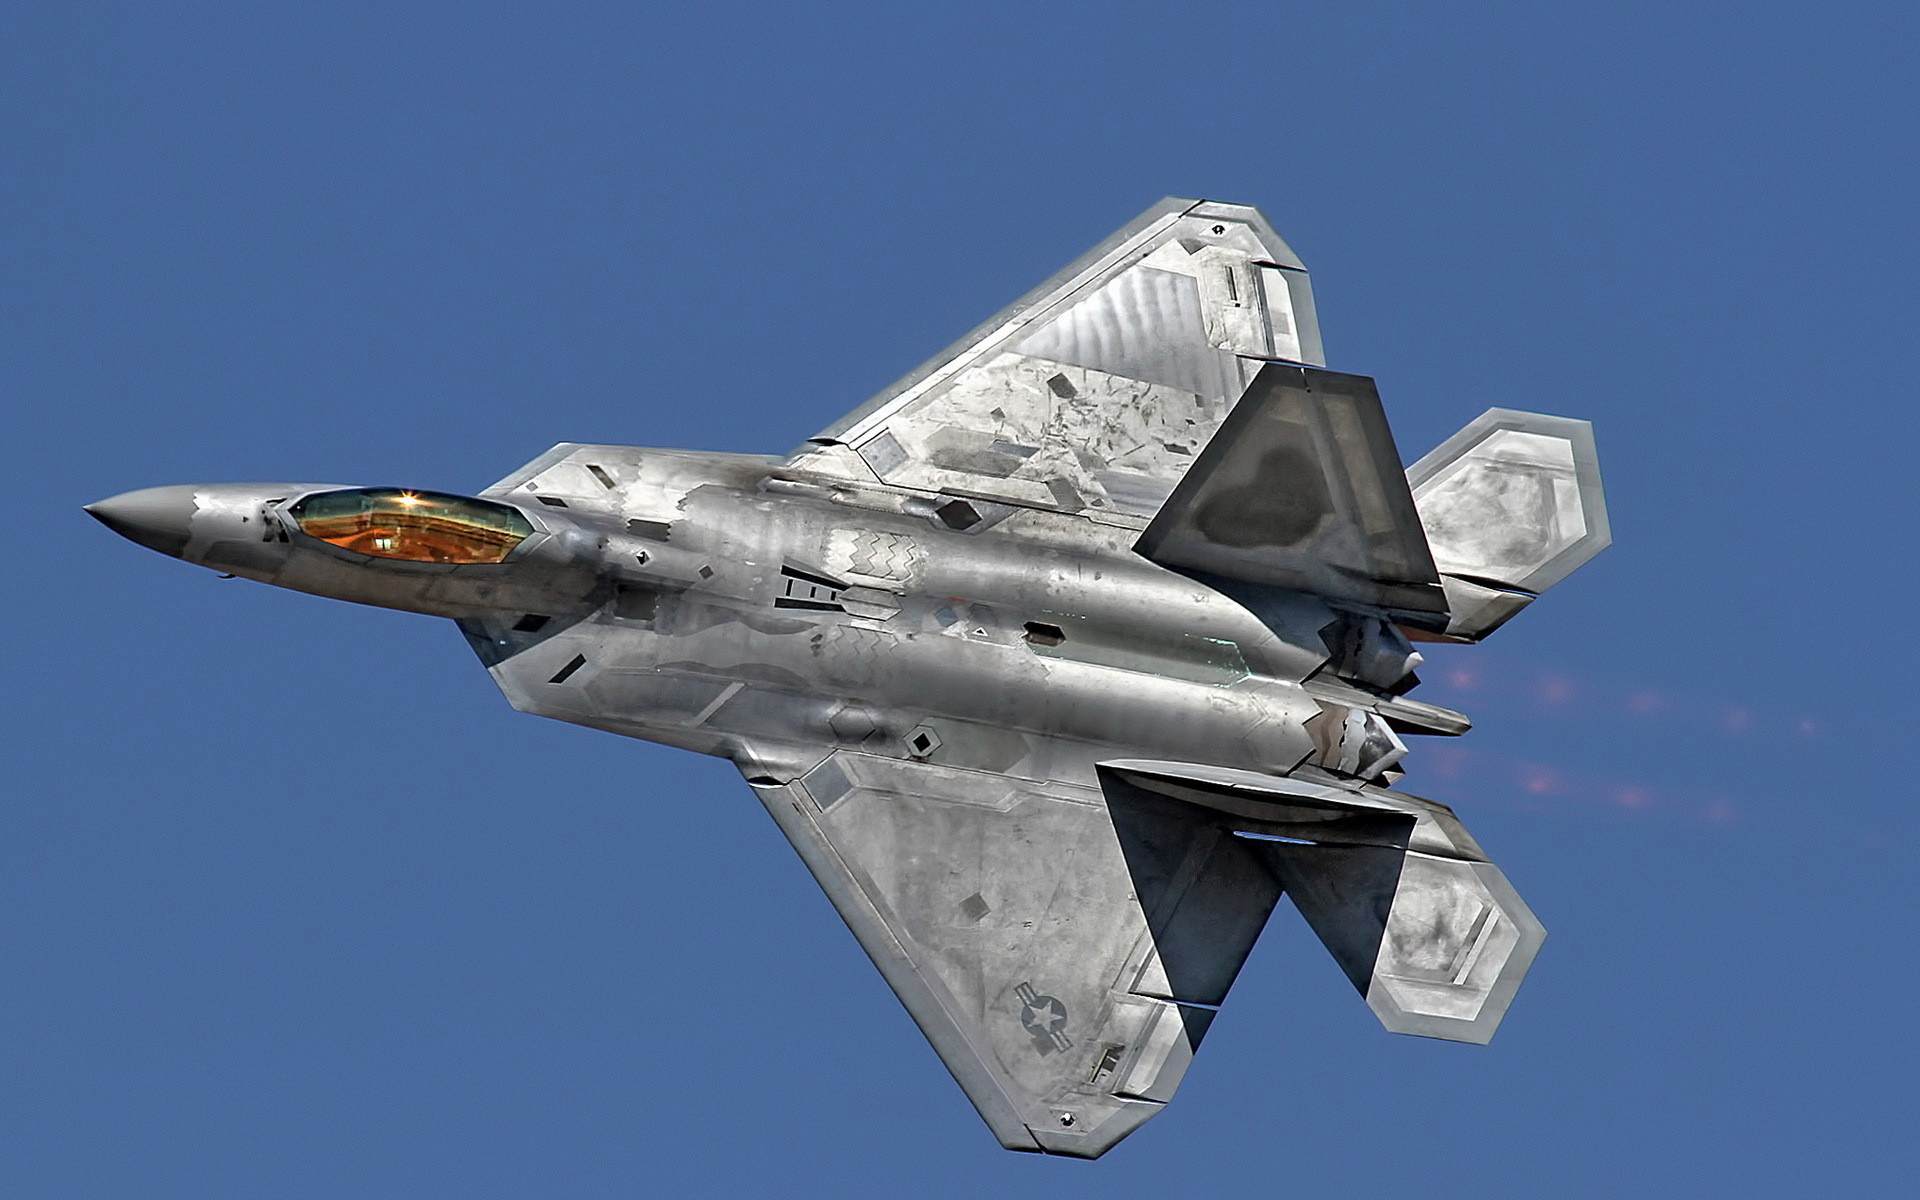 Community With Army Navy Air Force News F 22 Raptor Wallpaper HD 1920x1200